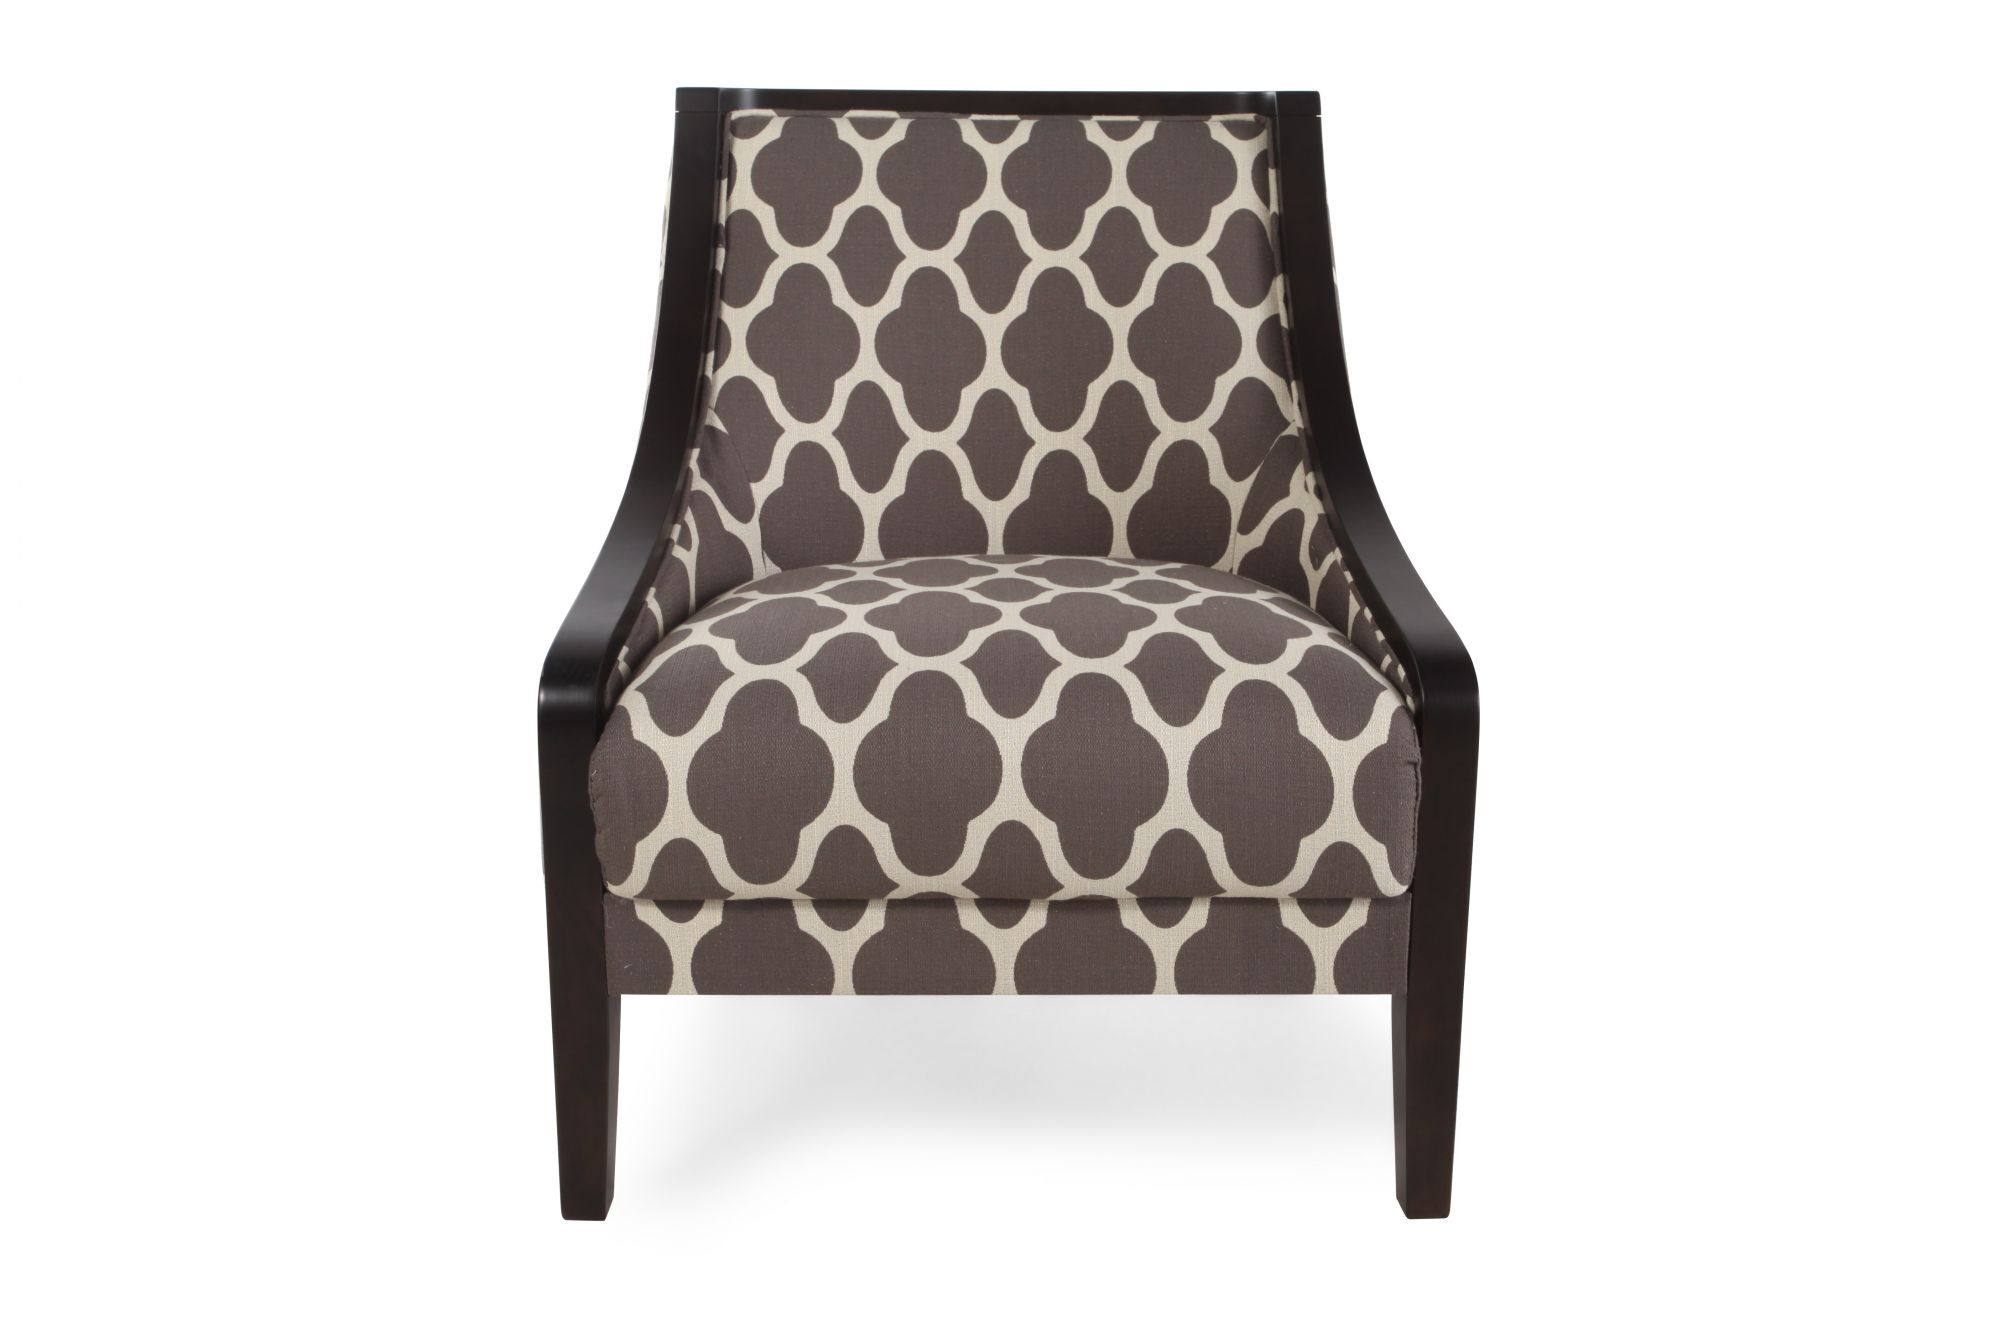 Patterned Chairs Quatrefoil Patterned Contemporary 28 Quot Accent Chair In Dove